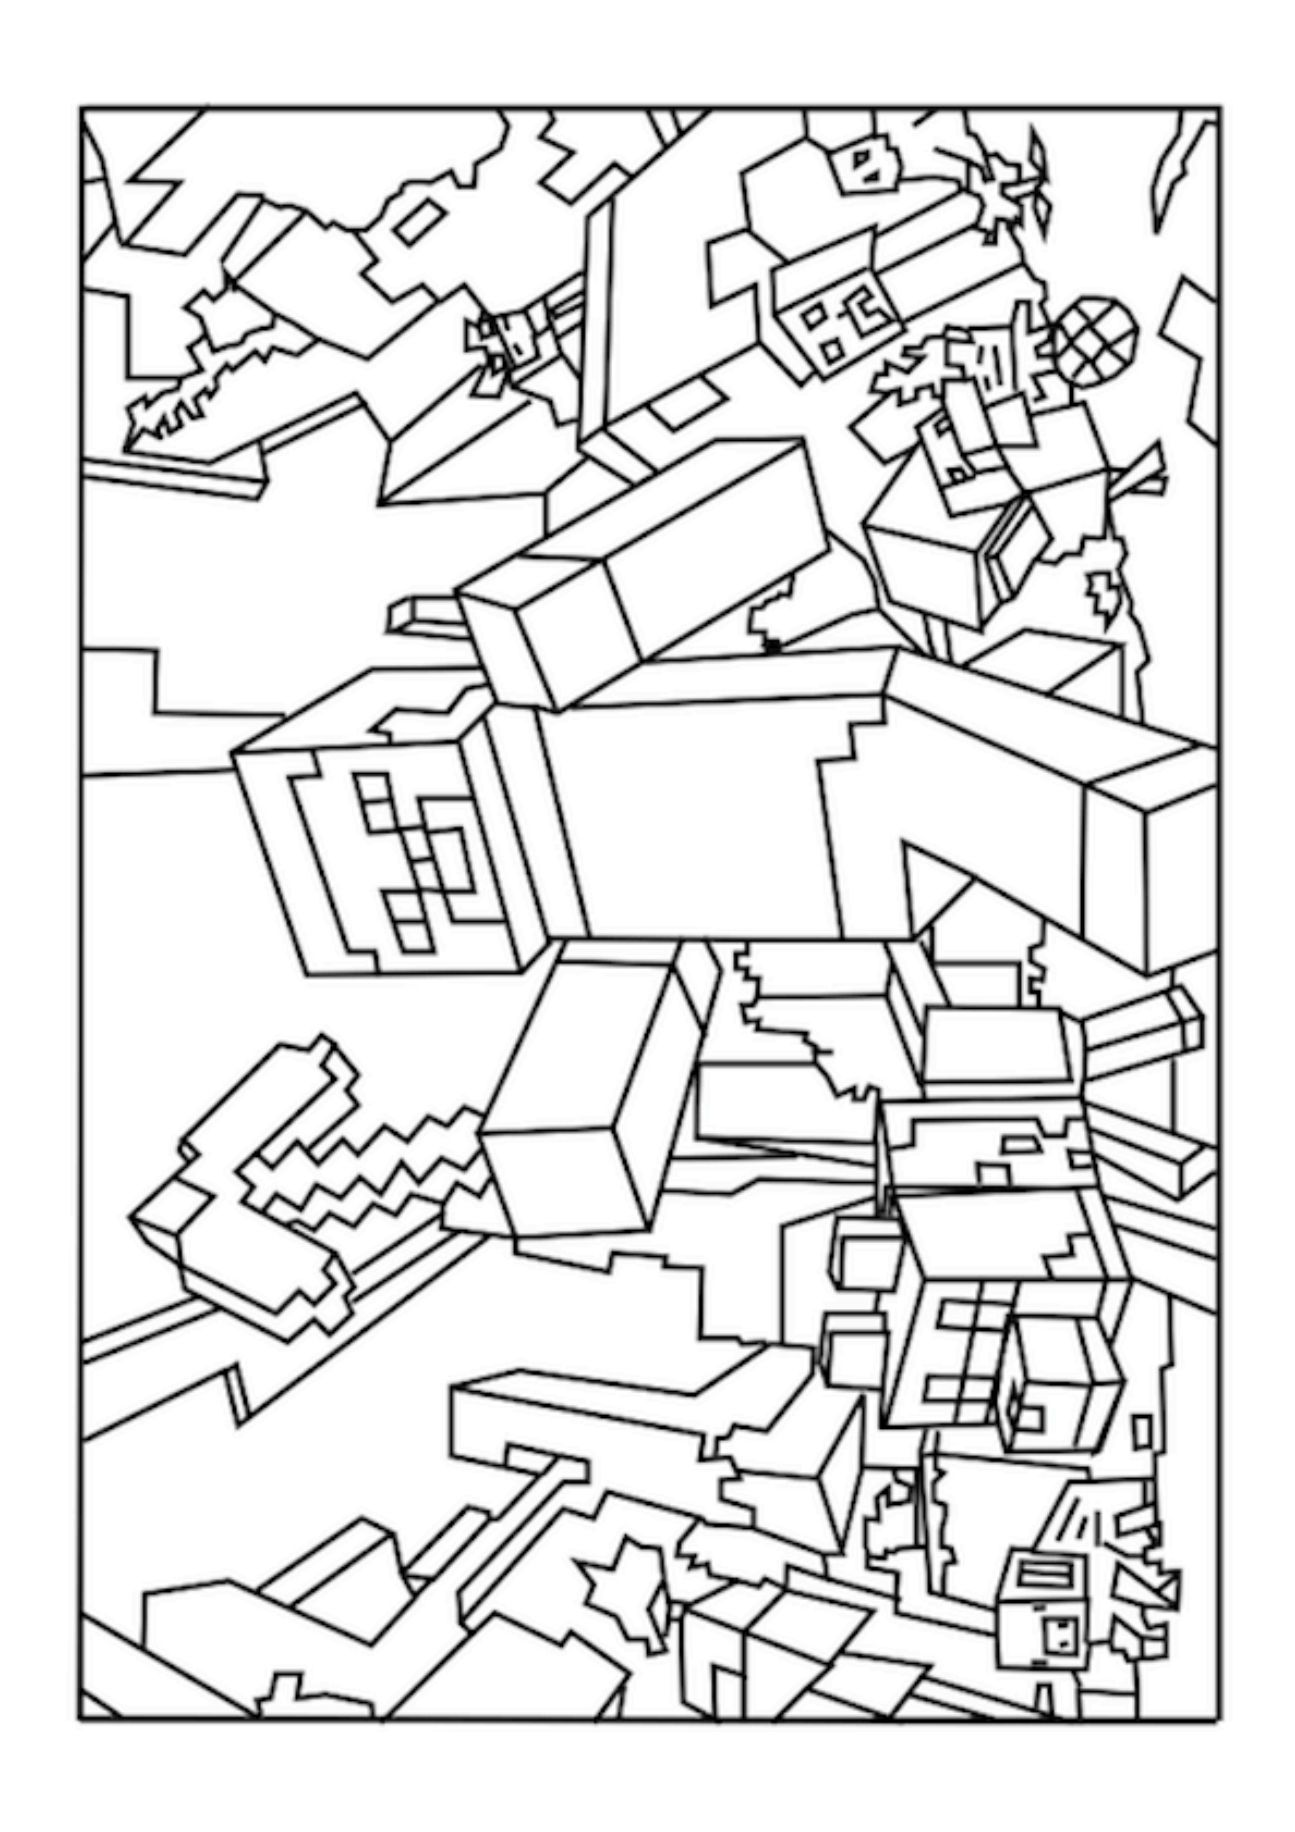 This is an image of Nifty Minecraft Coloring Pages Printable